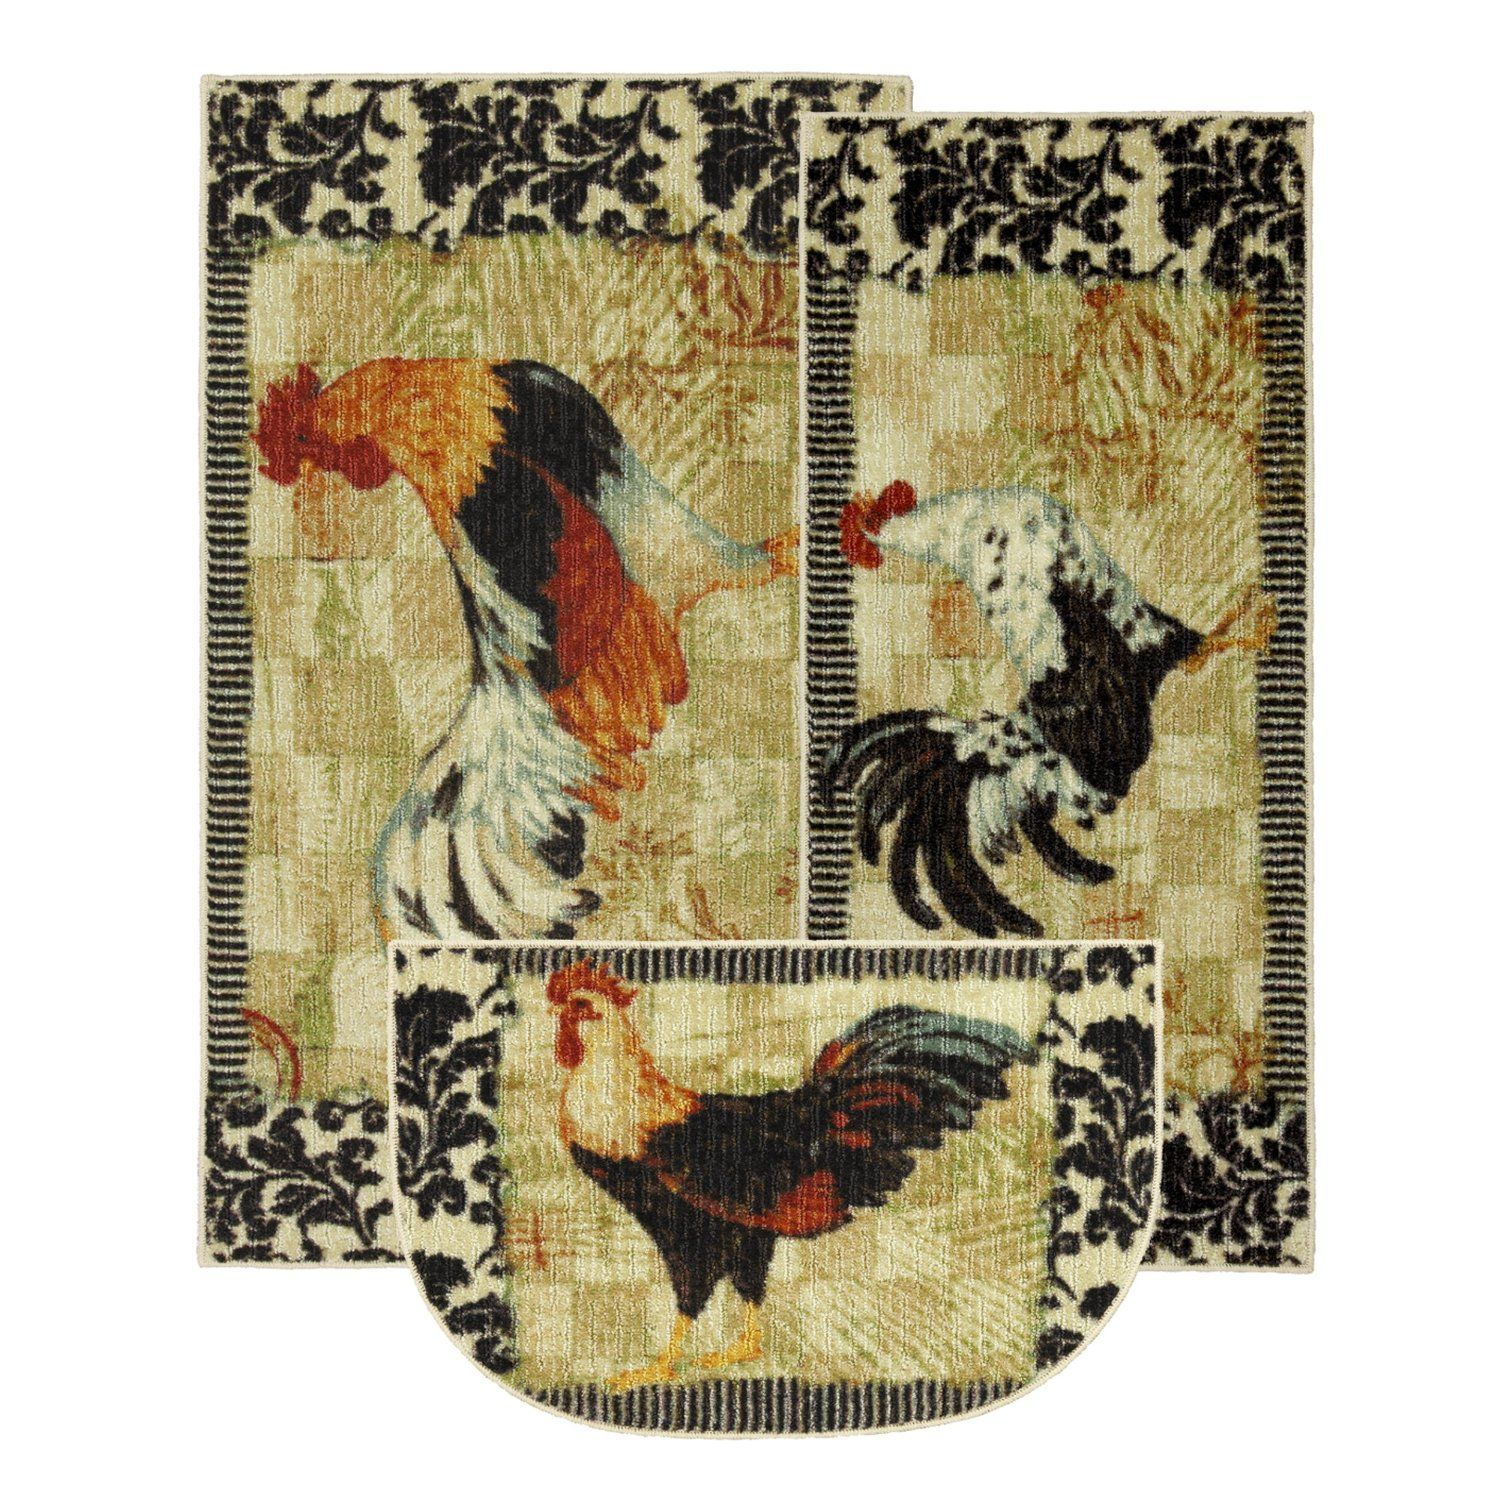 Amazon.com: 3 Pc Accent Rug Set with Bergerac Rooster Motif ...